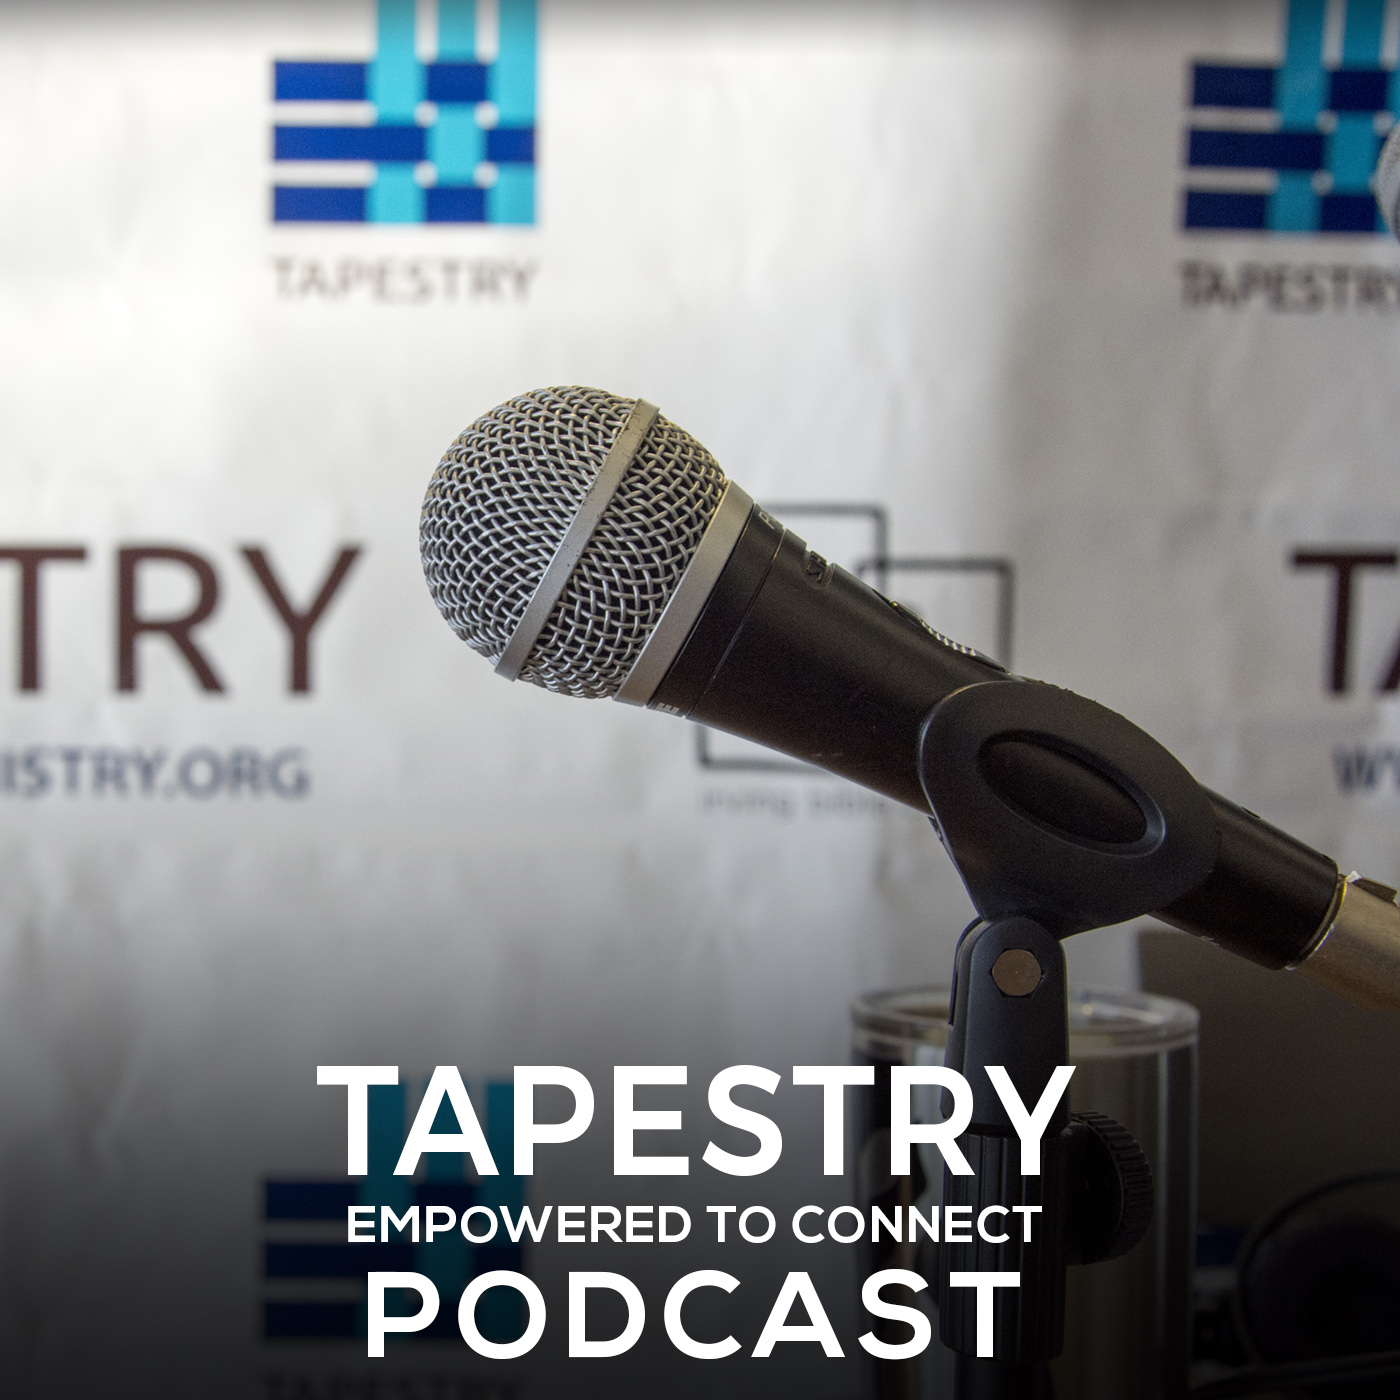 Tapestry's Empowered to Connect Podcast